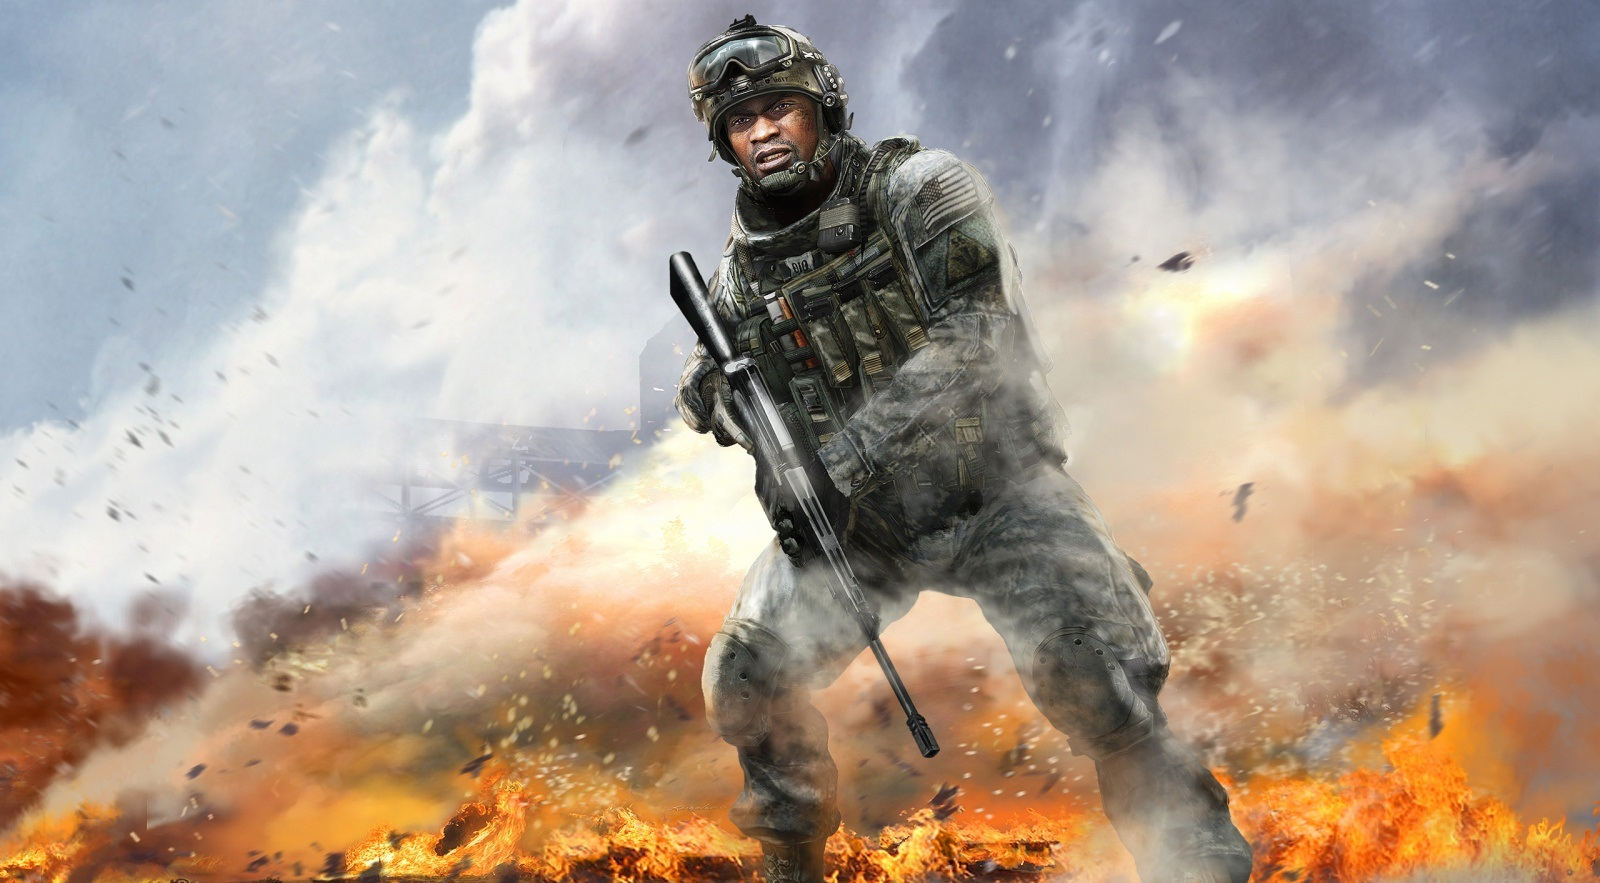 Sick Wallpapers For Iphone 5 Call Of Duty Wallpaper And Background Image 1600x883